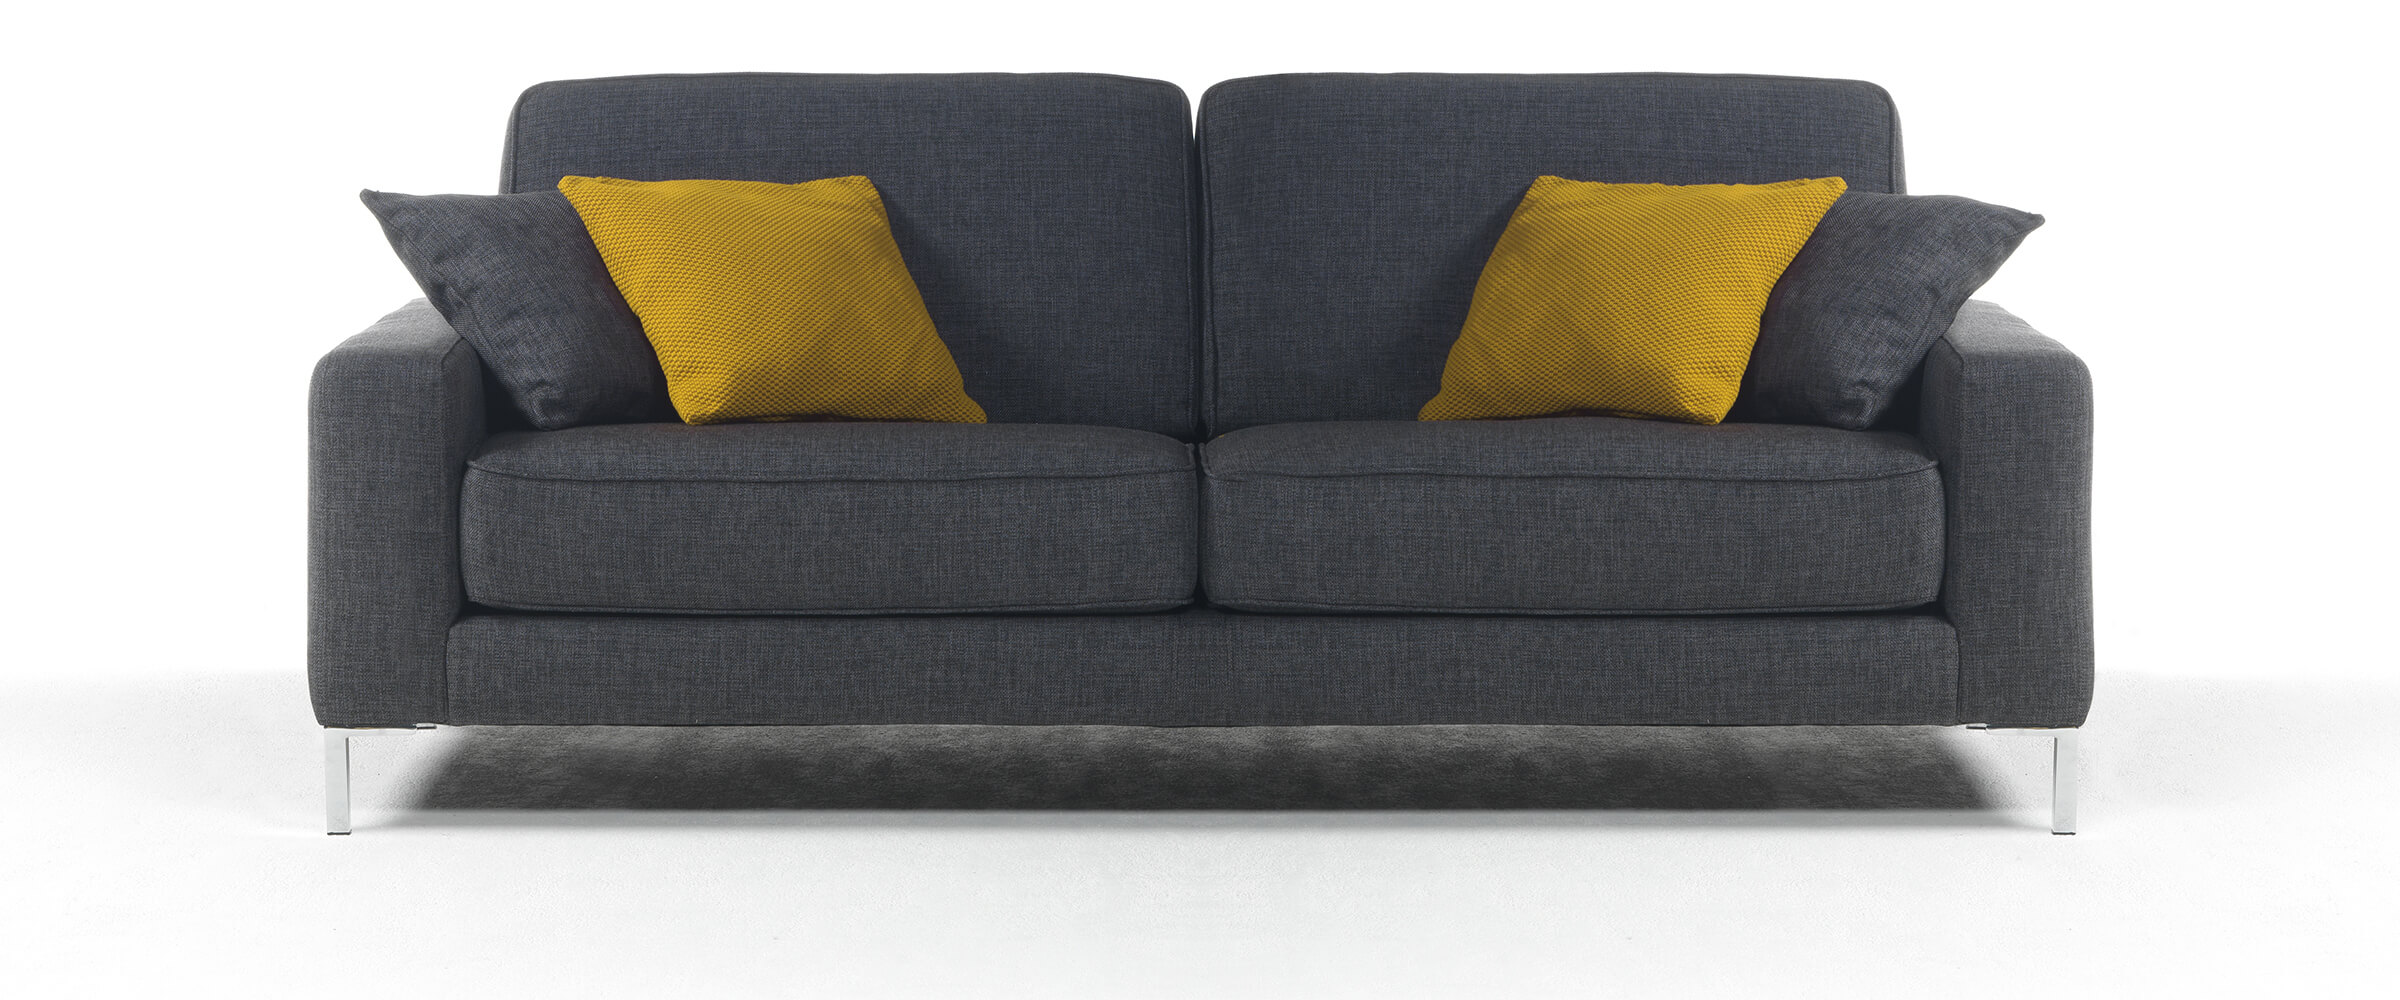 Sofa Bed Available In Three Diffe Dimensions With Mattress Cm 120 140 And 160cm Mechanism Lampolet Wooden Slats 17 Spring